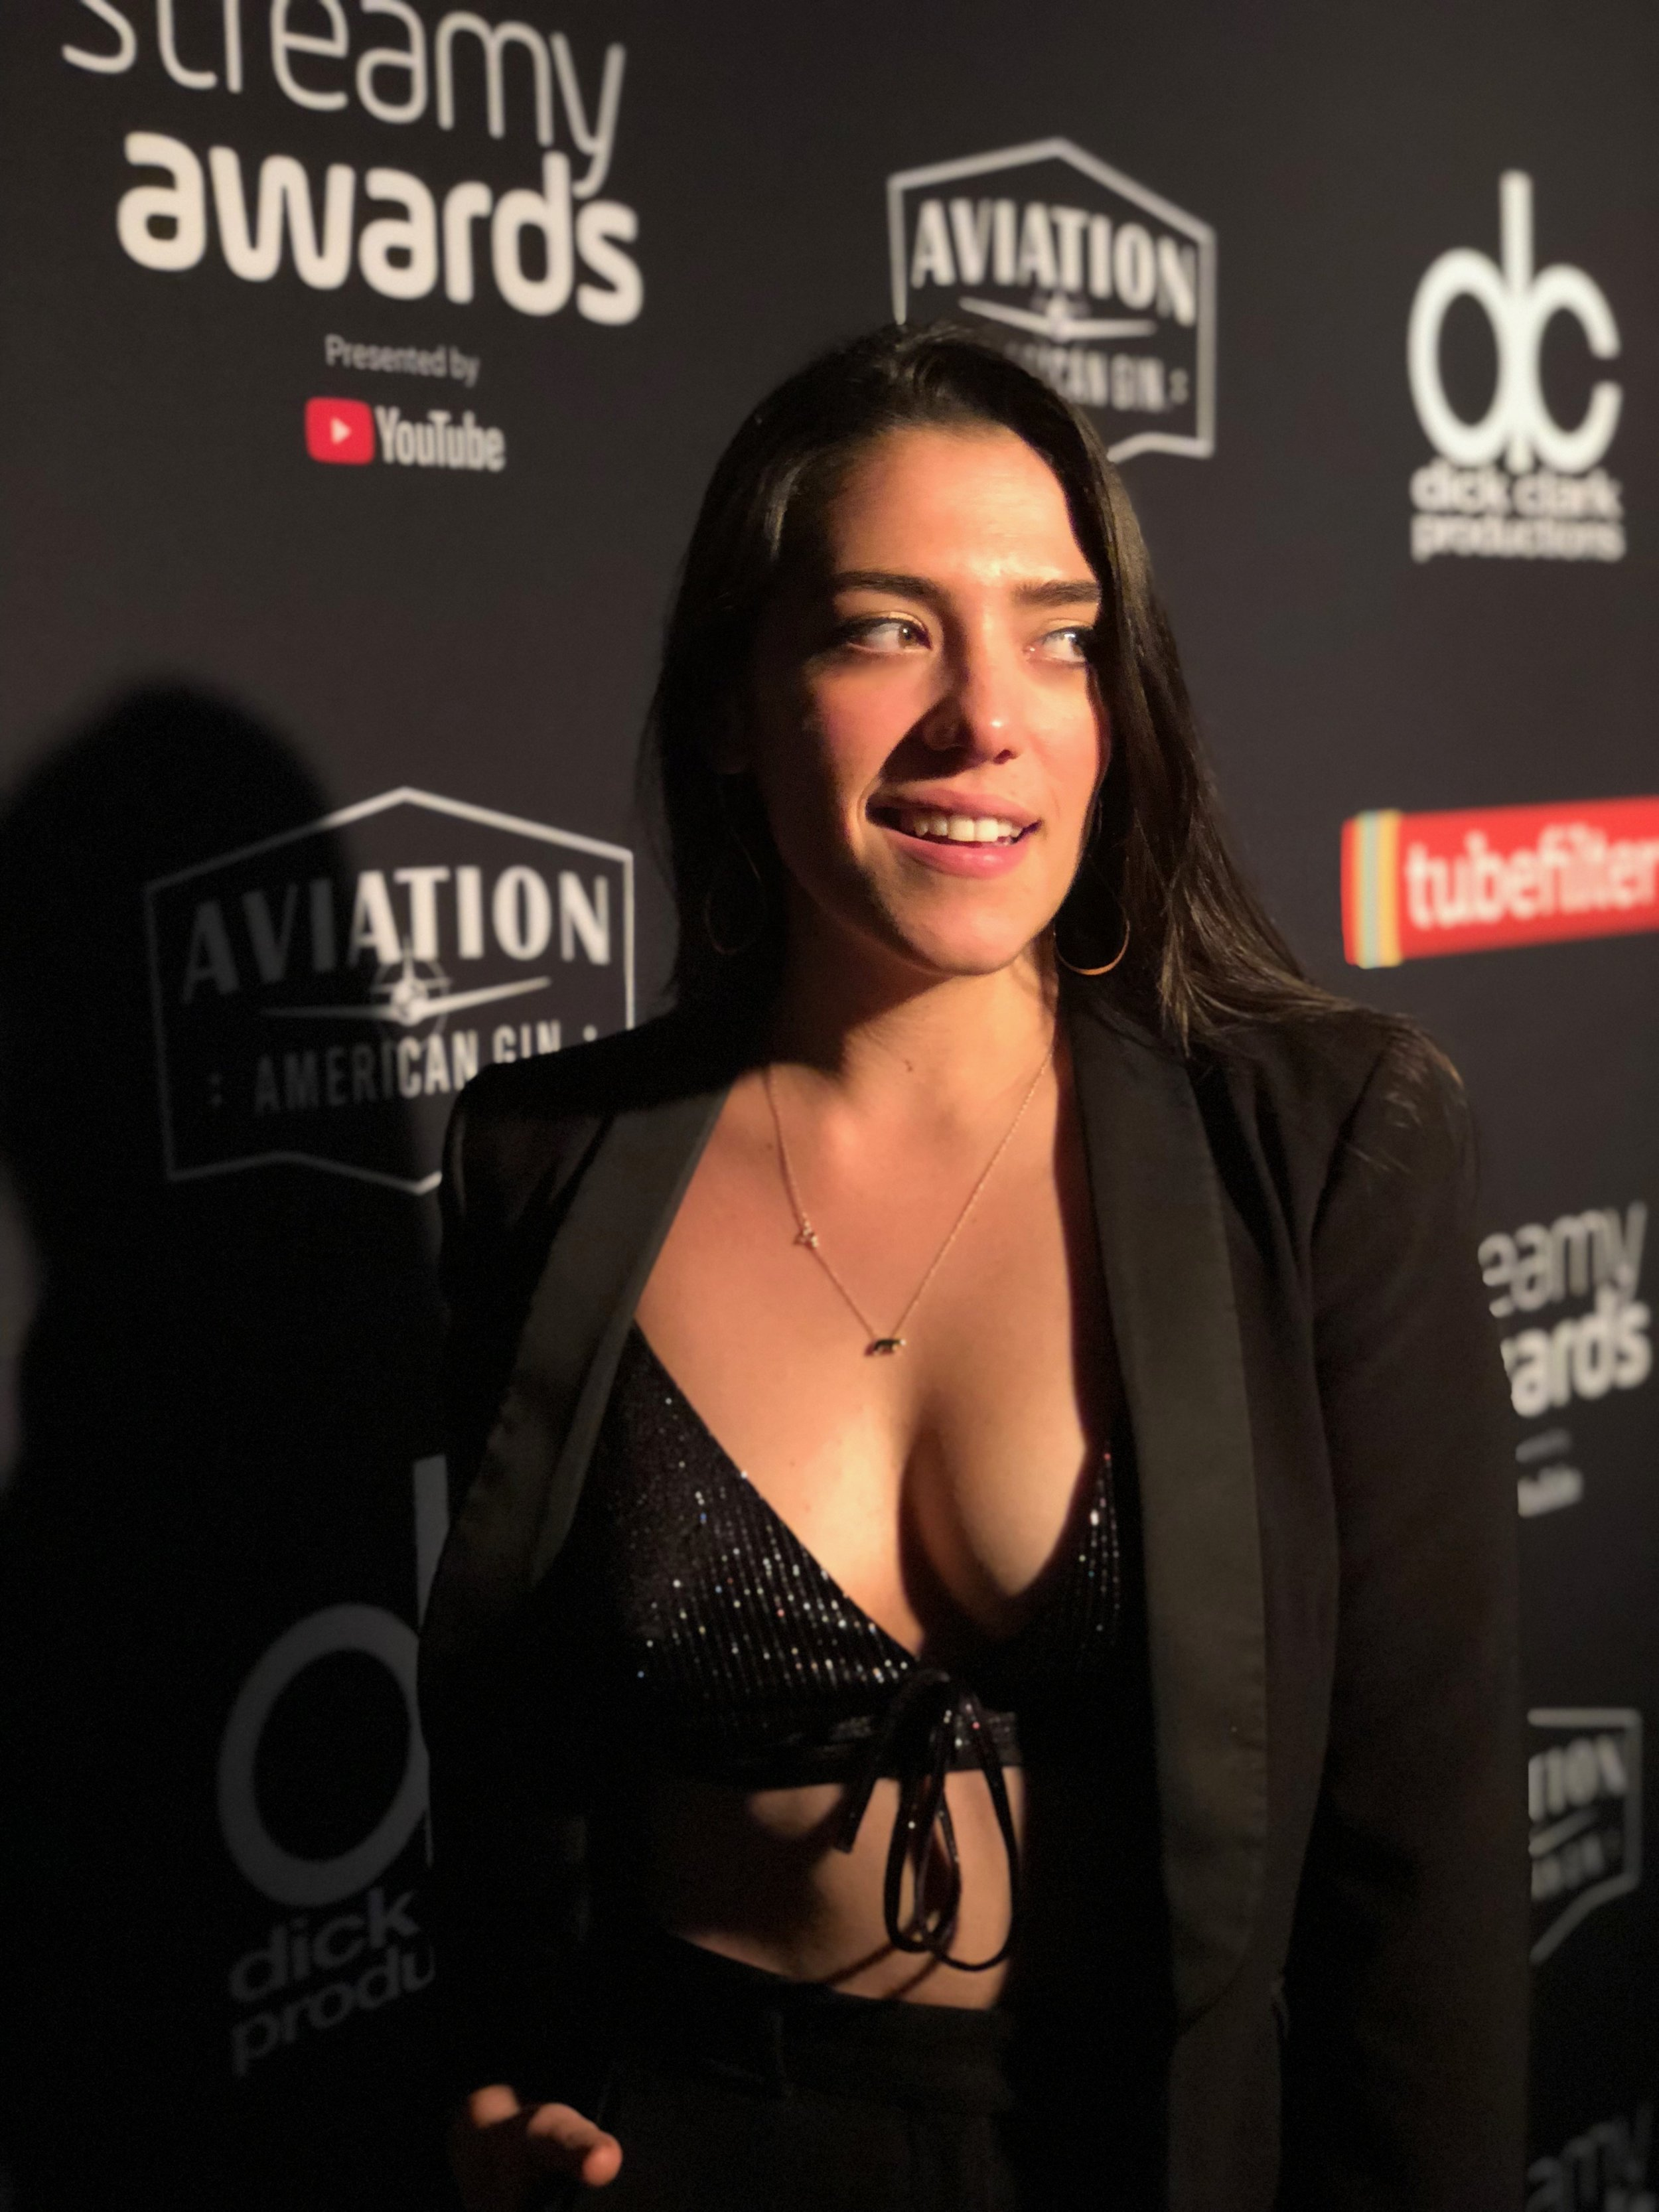 Streamy Awards 2018 Red Carpet with Twenty A Webseries